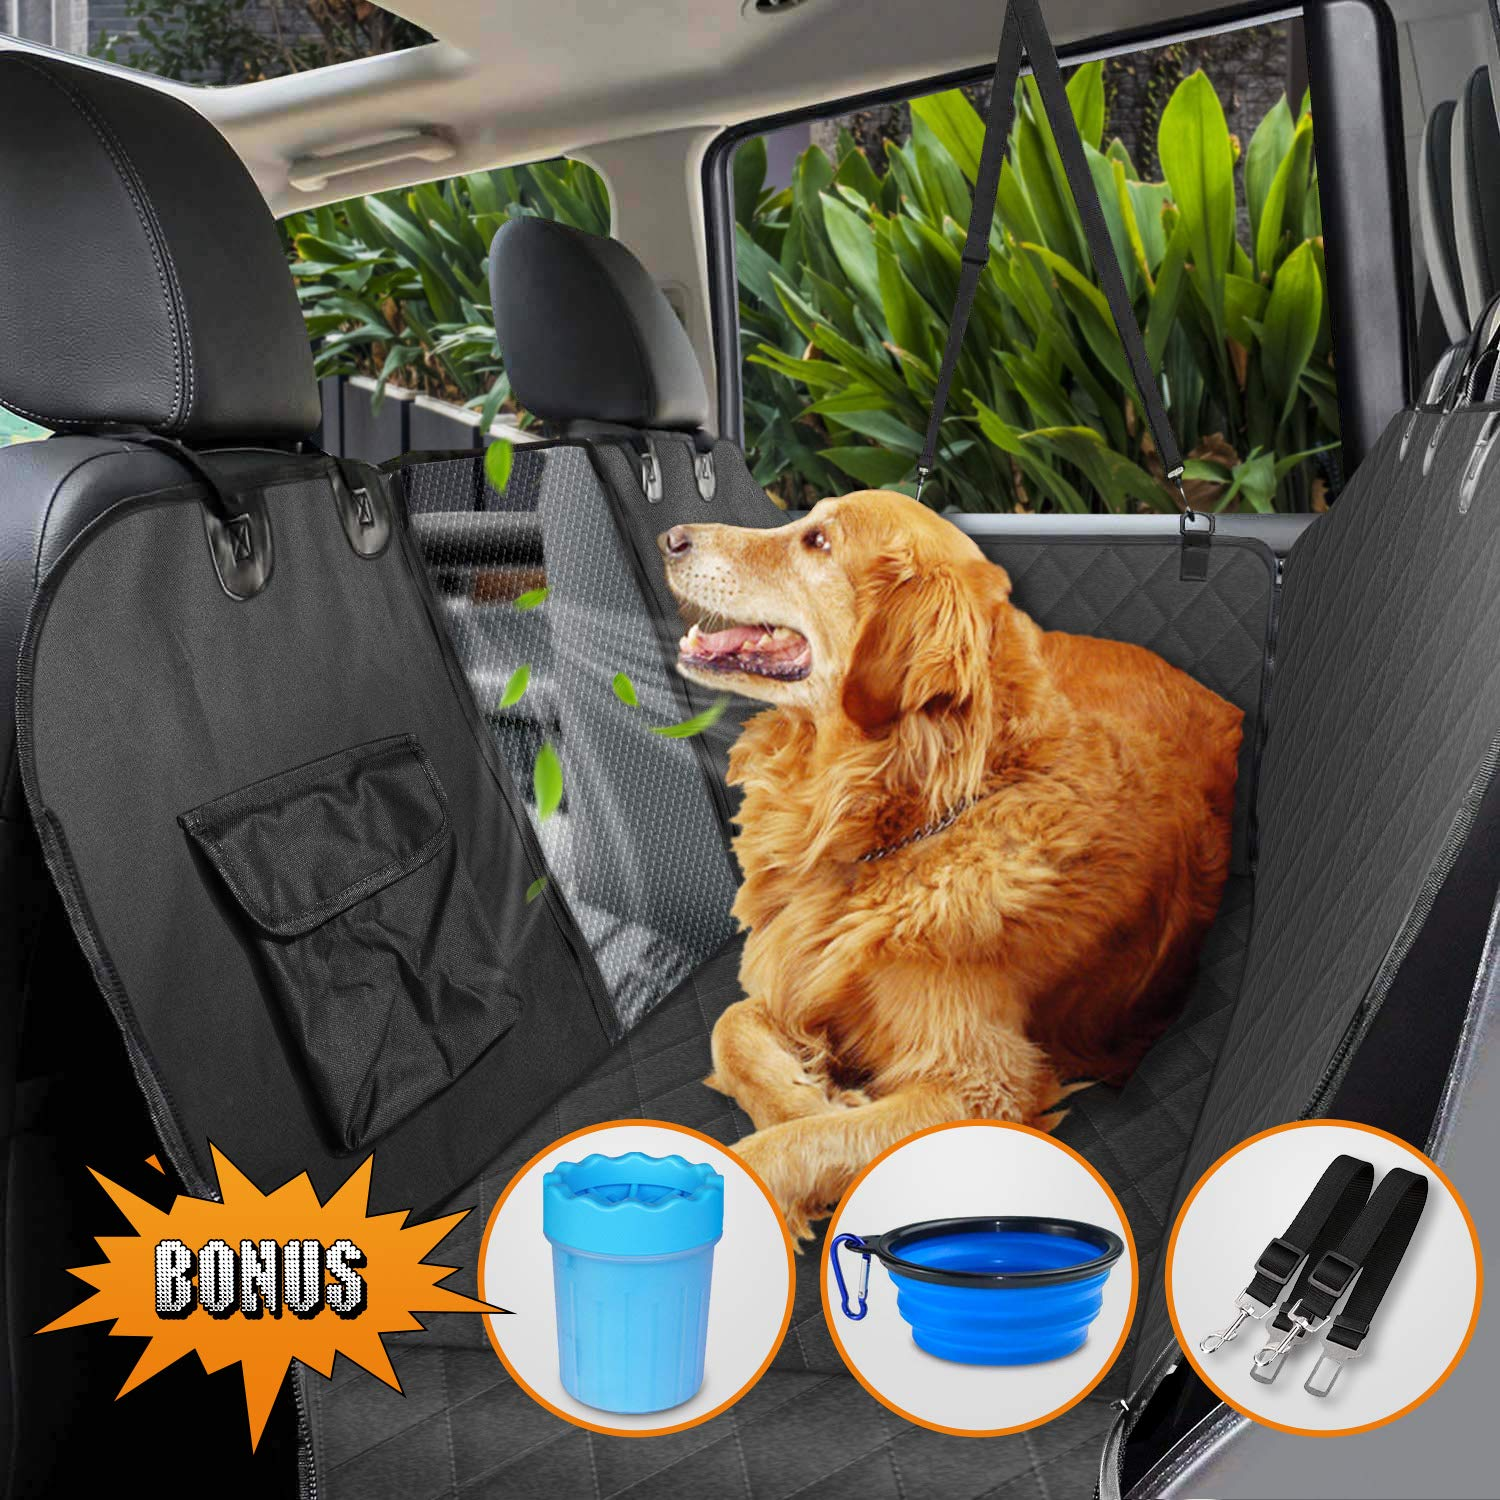 Dog Seat Cover for Back Seat, Upgraded 100% Waterproof Dog Car Seat Covers with Mesh Window, Scratch Proof Nonslip Dog Car Hammock, Car Seat Covers for Dogs, Dog Backseat Cover for Cars Trucks SUV